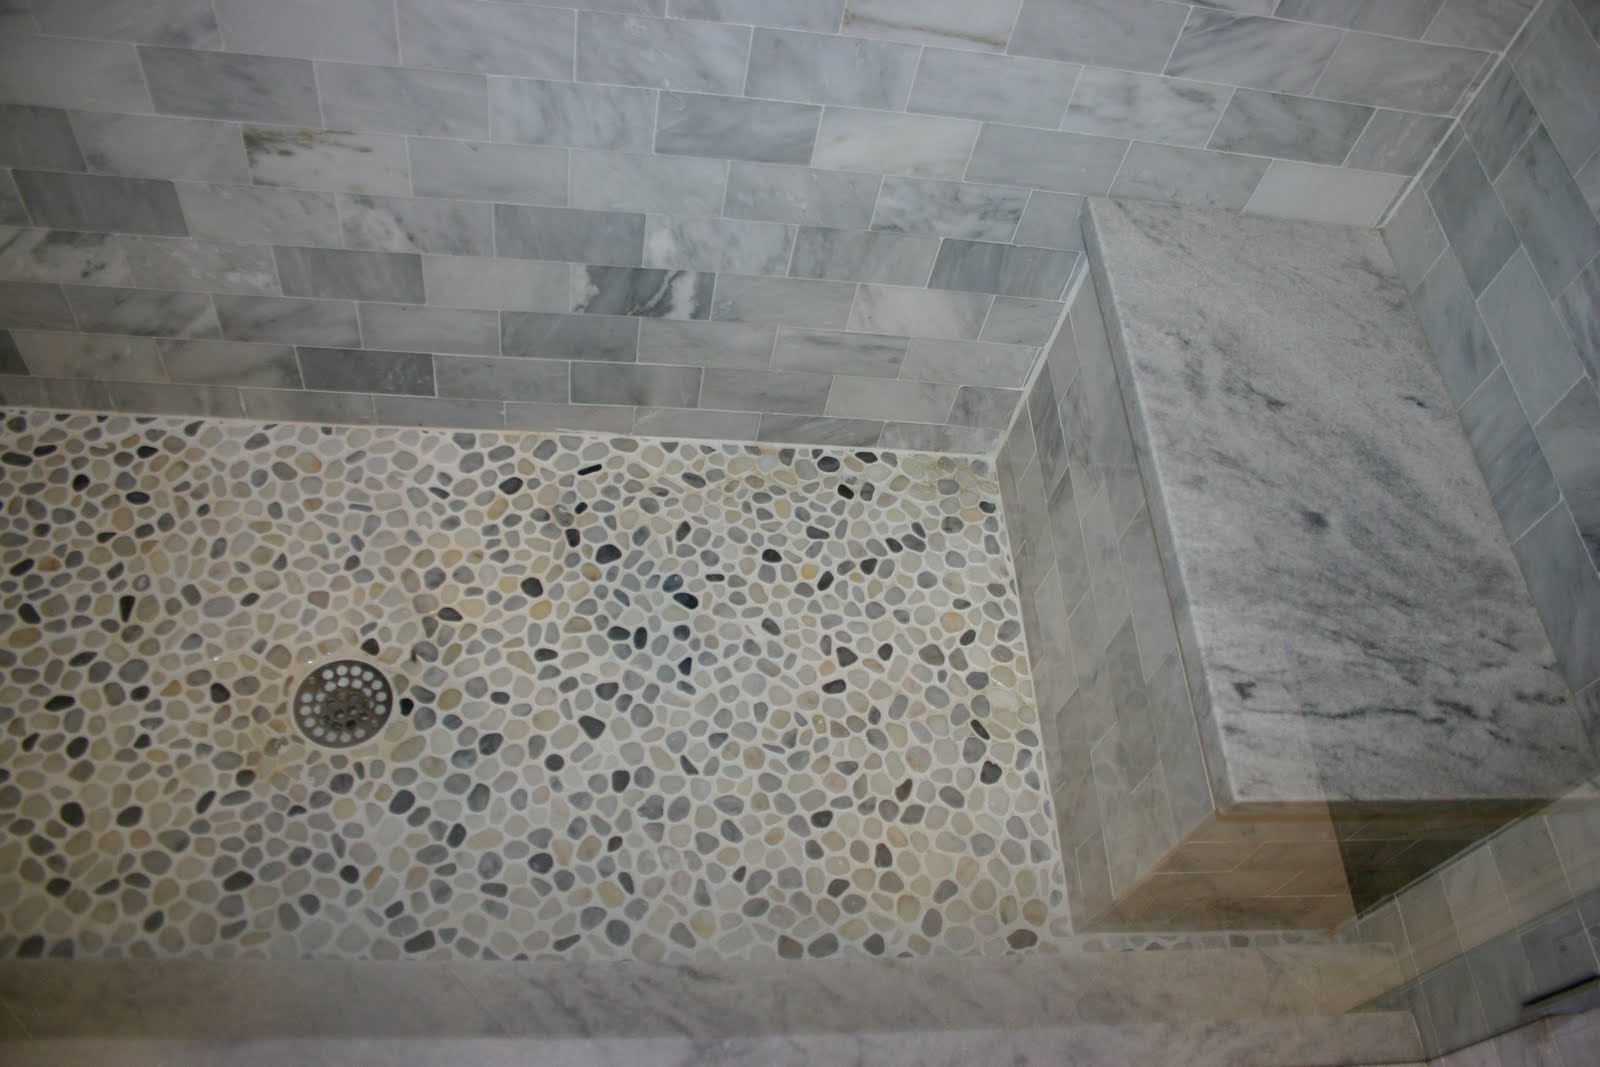 bathroom-enchanting-small-bathroom-decoration-using-white-pebble-tile-bathroom-floor-including-white-marble-tile-shower-seating-and-white-marble-tile-shower-wall-divine-bathroom-decoration-using-pebb